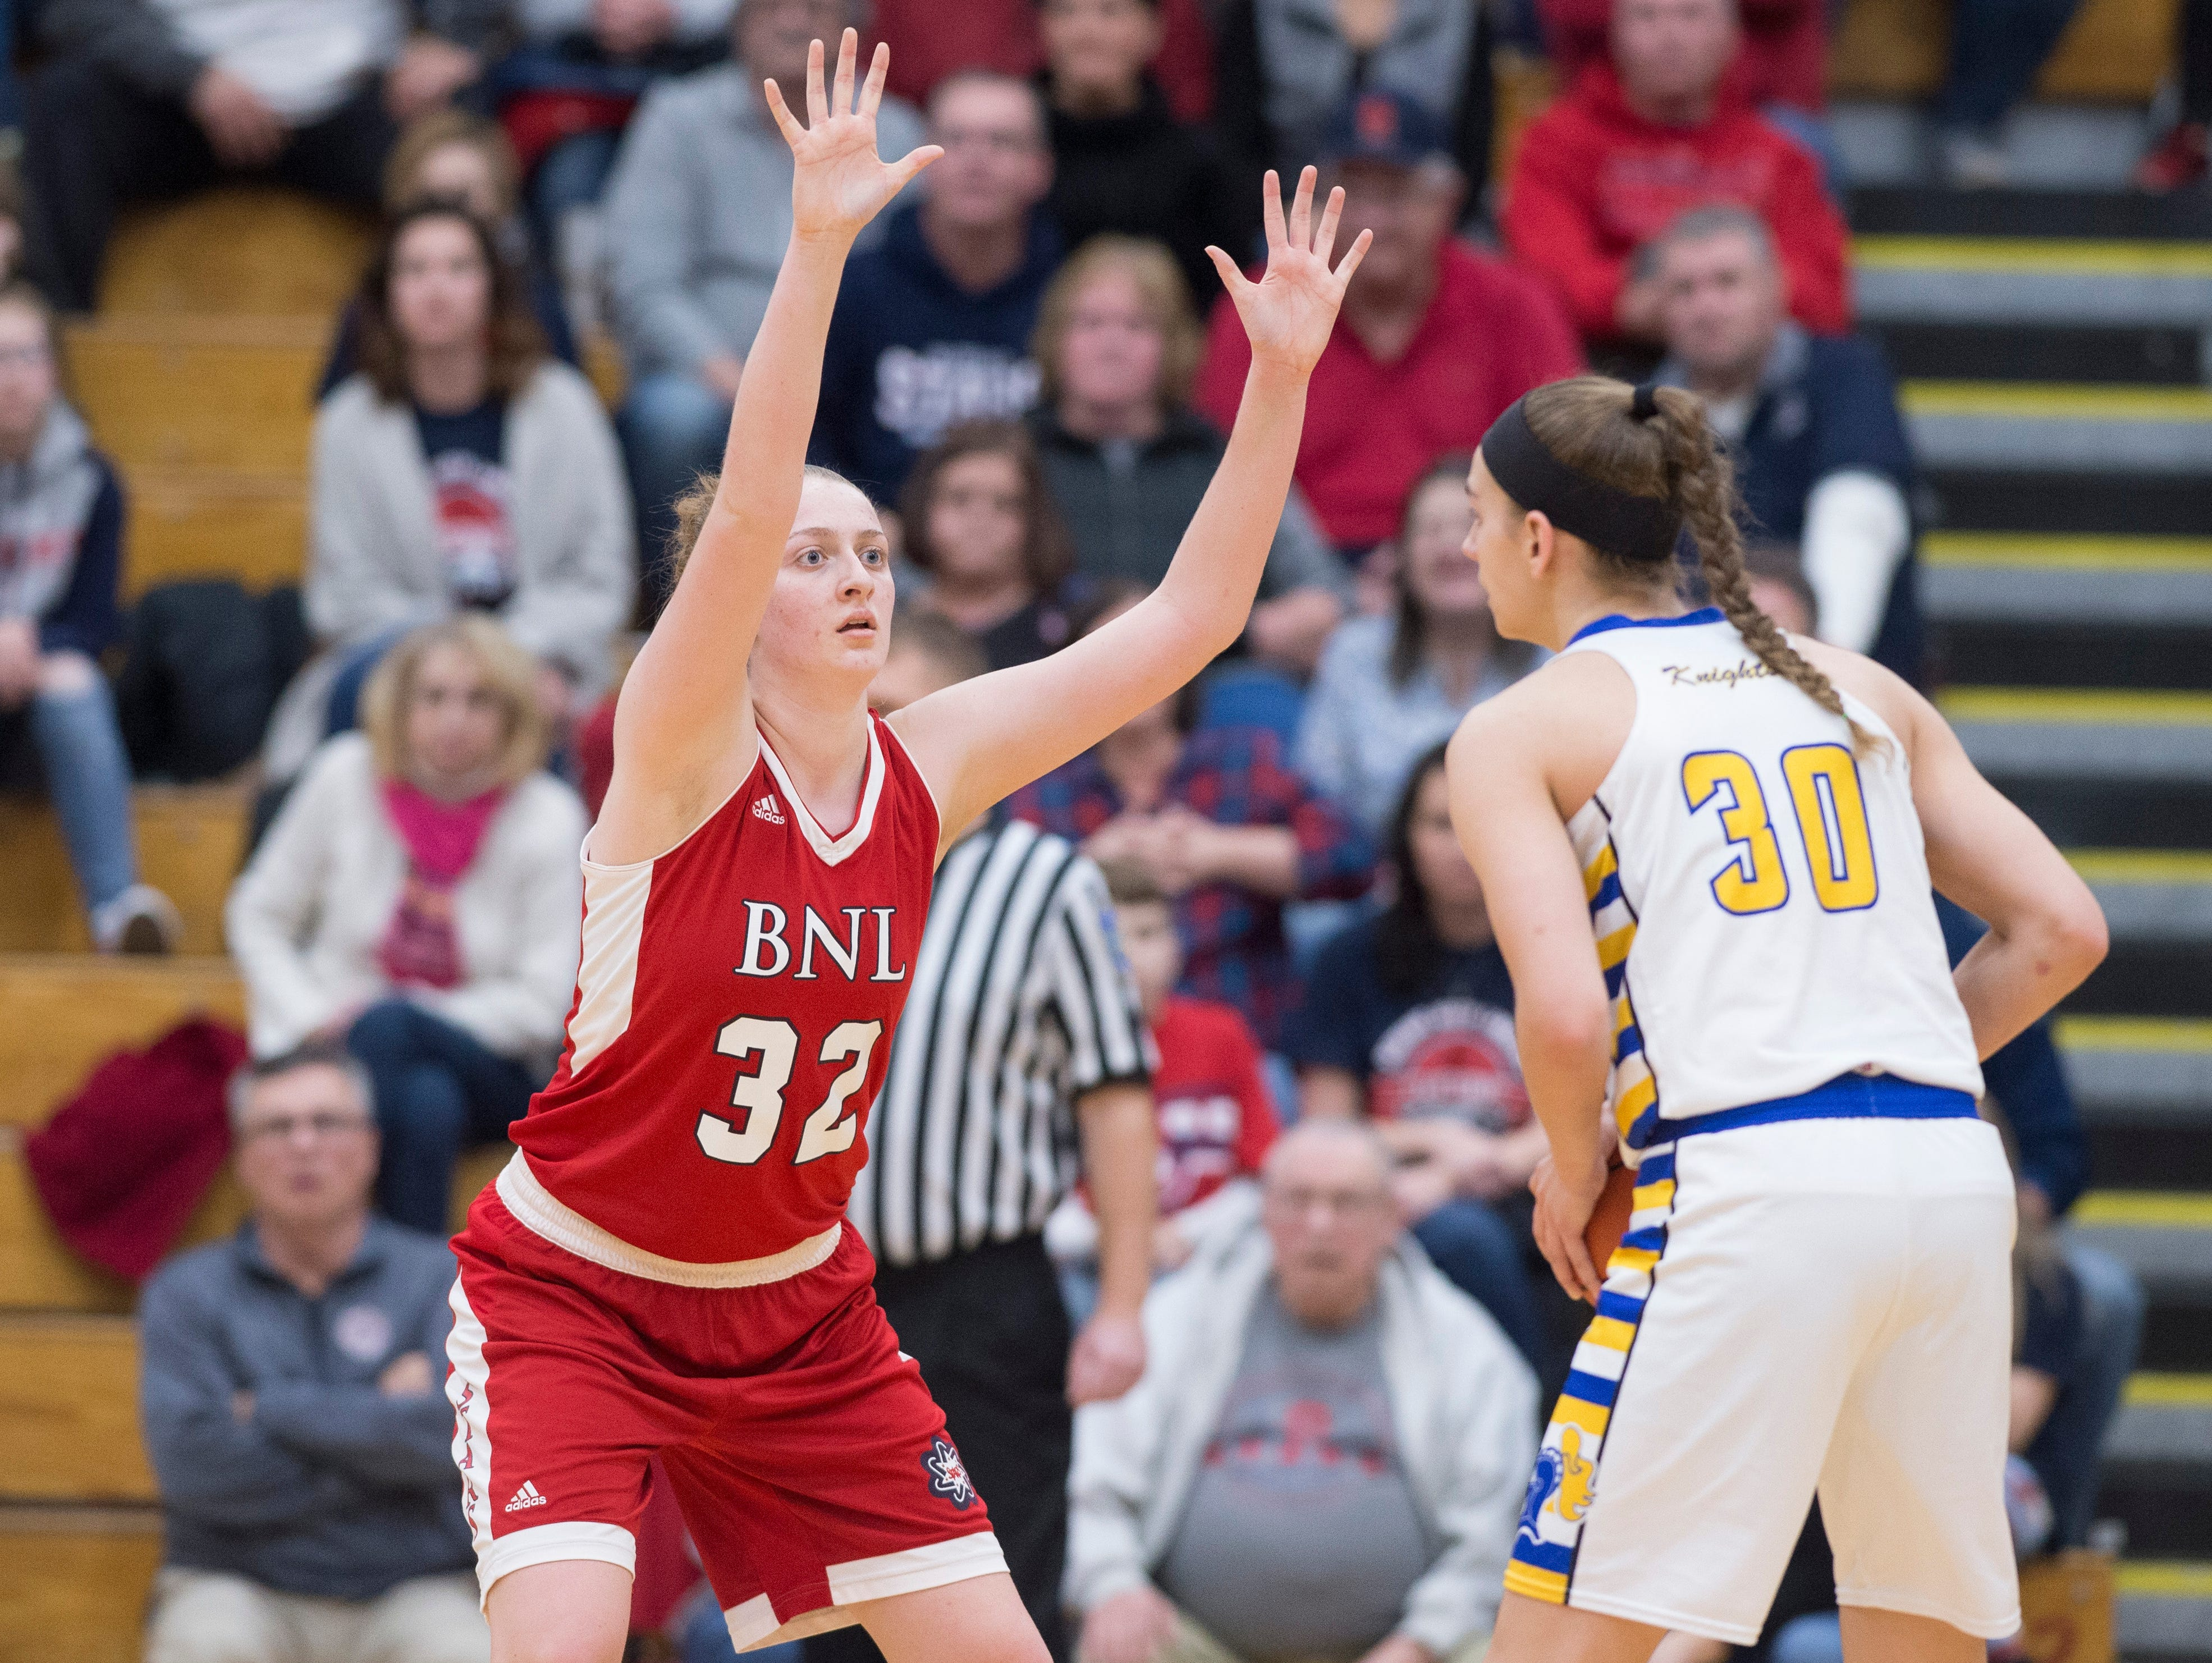 Bedford North Lawrence's Madison Webb (32) guards Castle's Jessica Nunge (30) during the IHSAA Girls Basketball Class 4A Regional Championship game against the Castle Knights at the Stars Field House in Bedford, Ind. Saturday, Feb. 9, 2019.